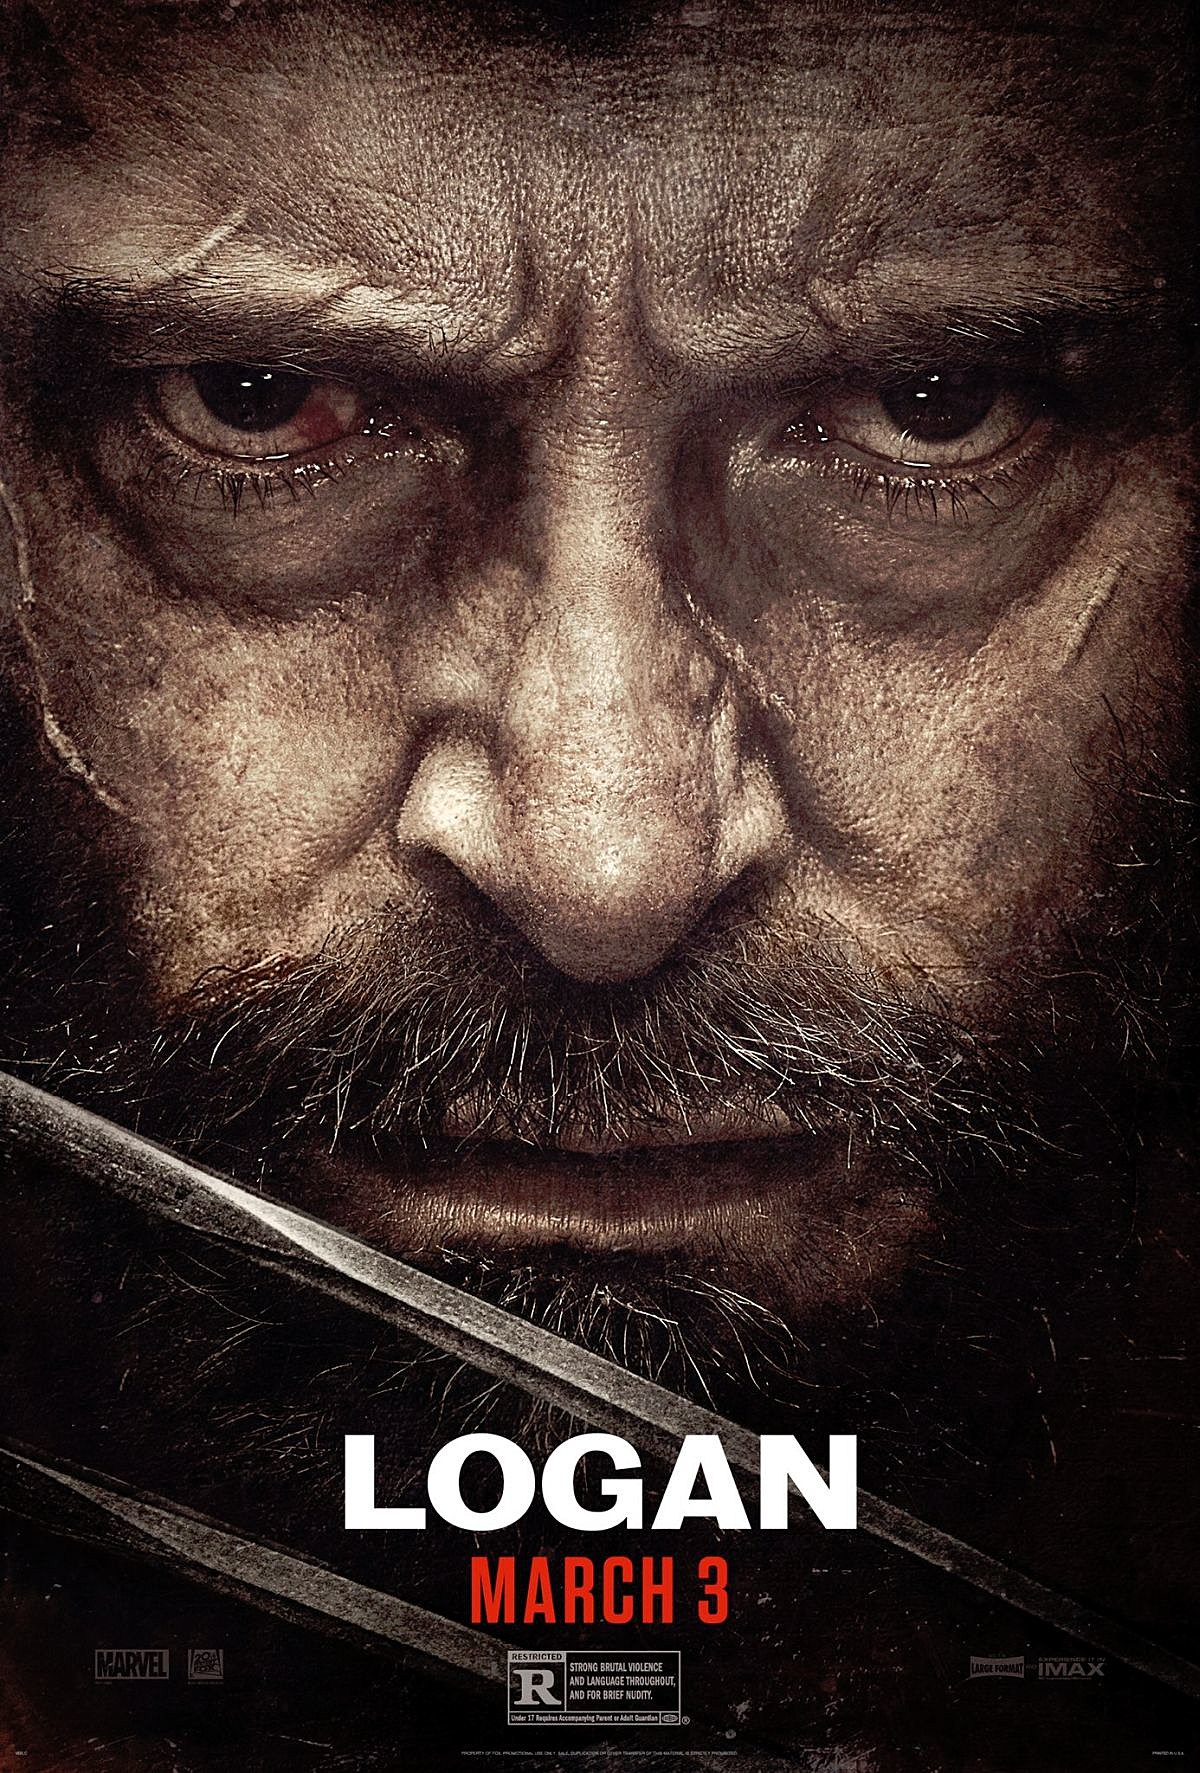 http://screencrush.com/files/2017/01/loganposter2.jpg